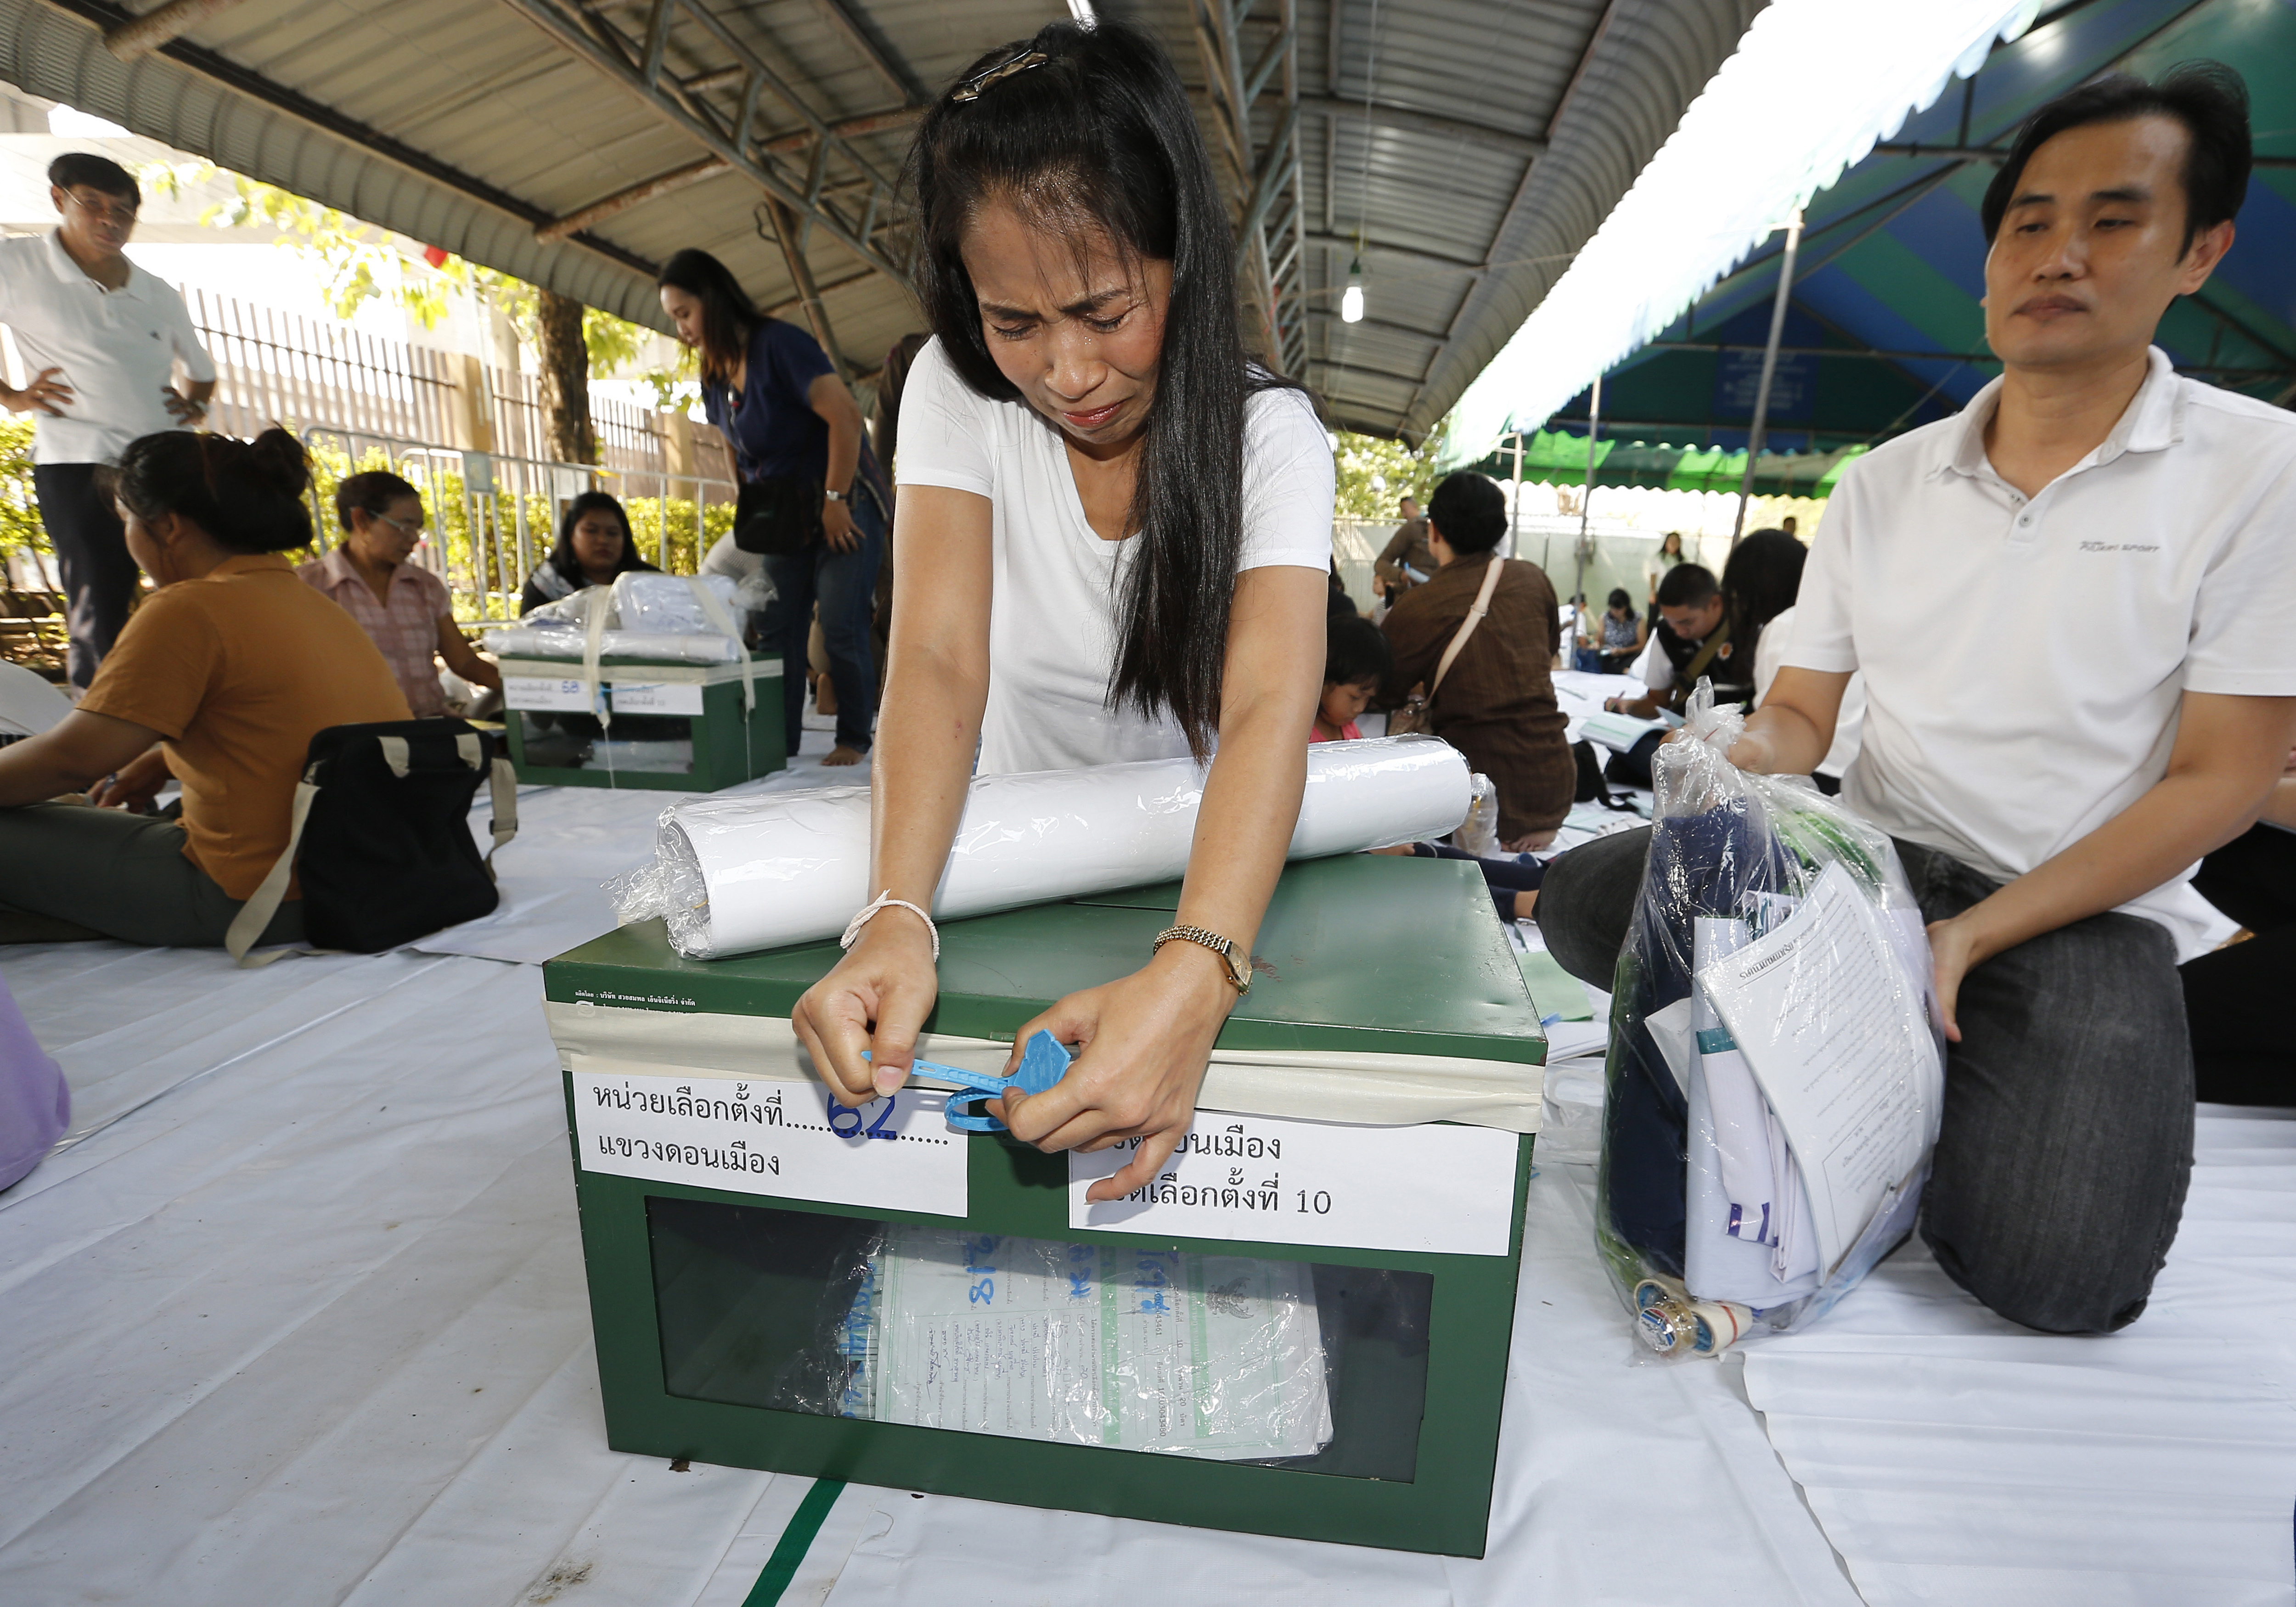 Volunteers lock ballot boxes ahead of Sunday's general elections Bangkok, Thailand, Saturday, March 23, 2019. The nation's first general election since the military seized power in a 2014 coup is scheduled to be held on March 24. (AP Photo/Sakchai Lalit)